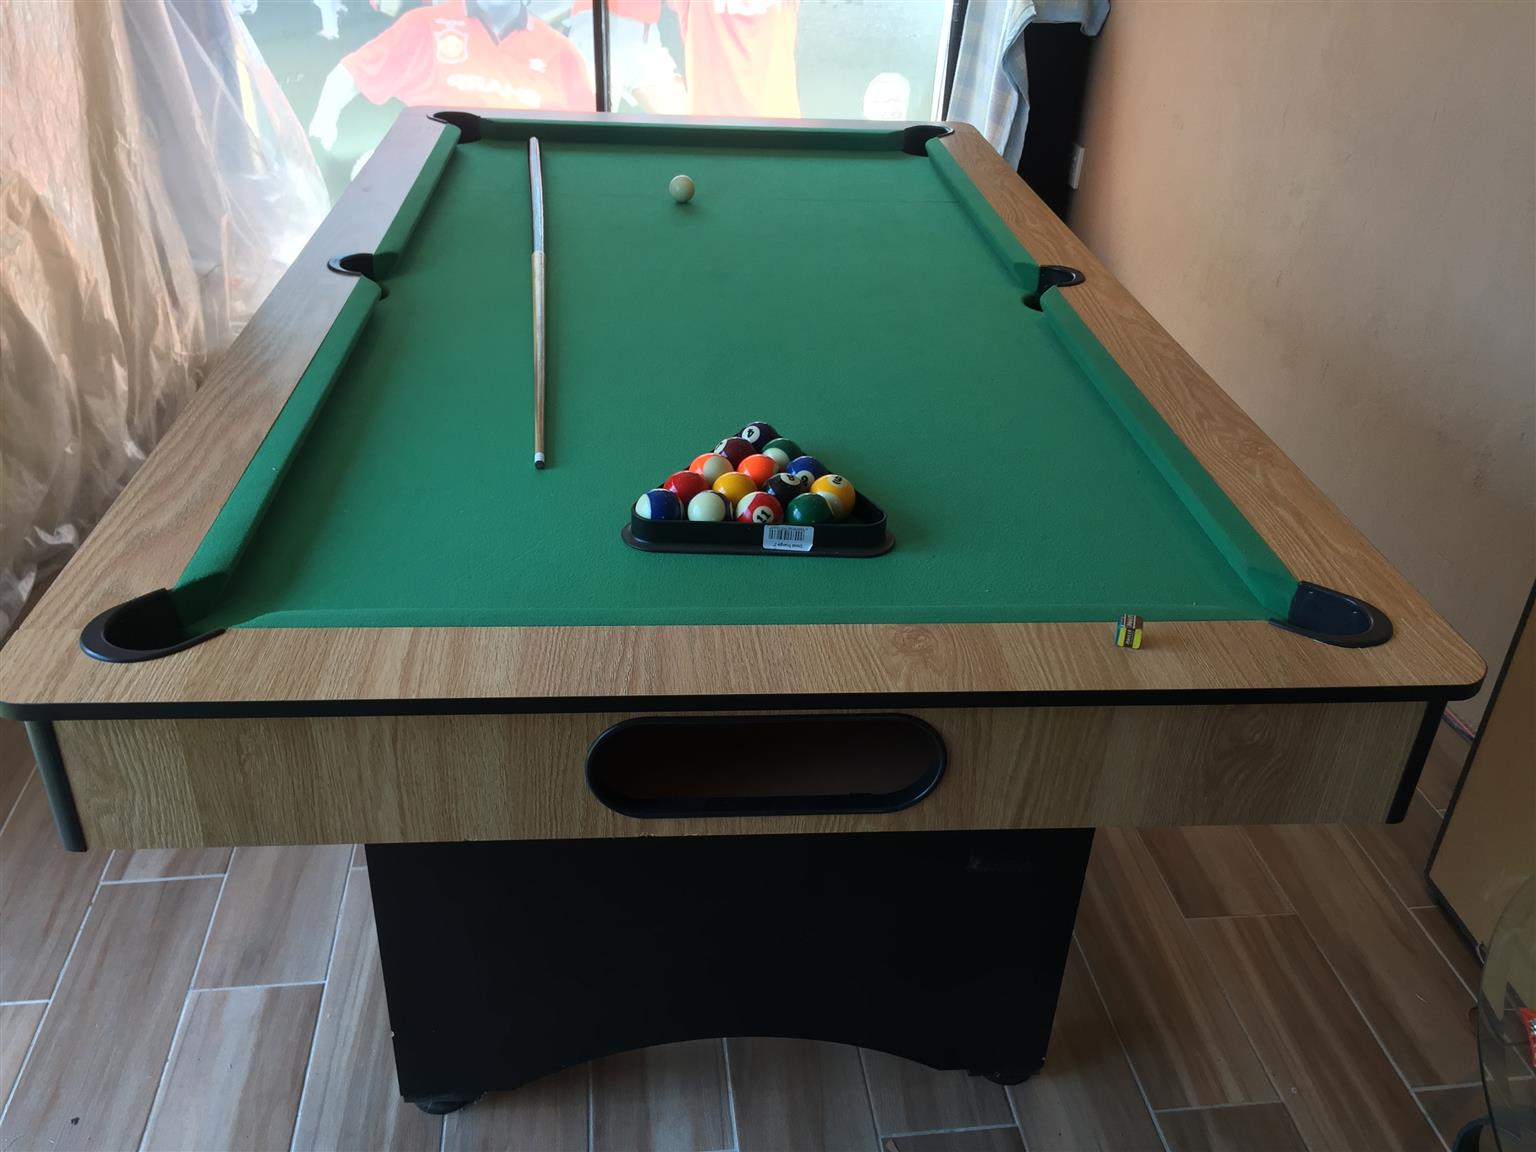 Shoot saloon style pool table for sale swop junk mail for Oak beauty pool table